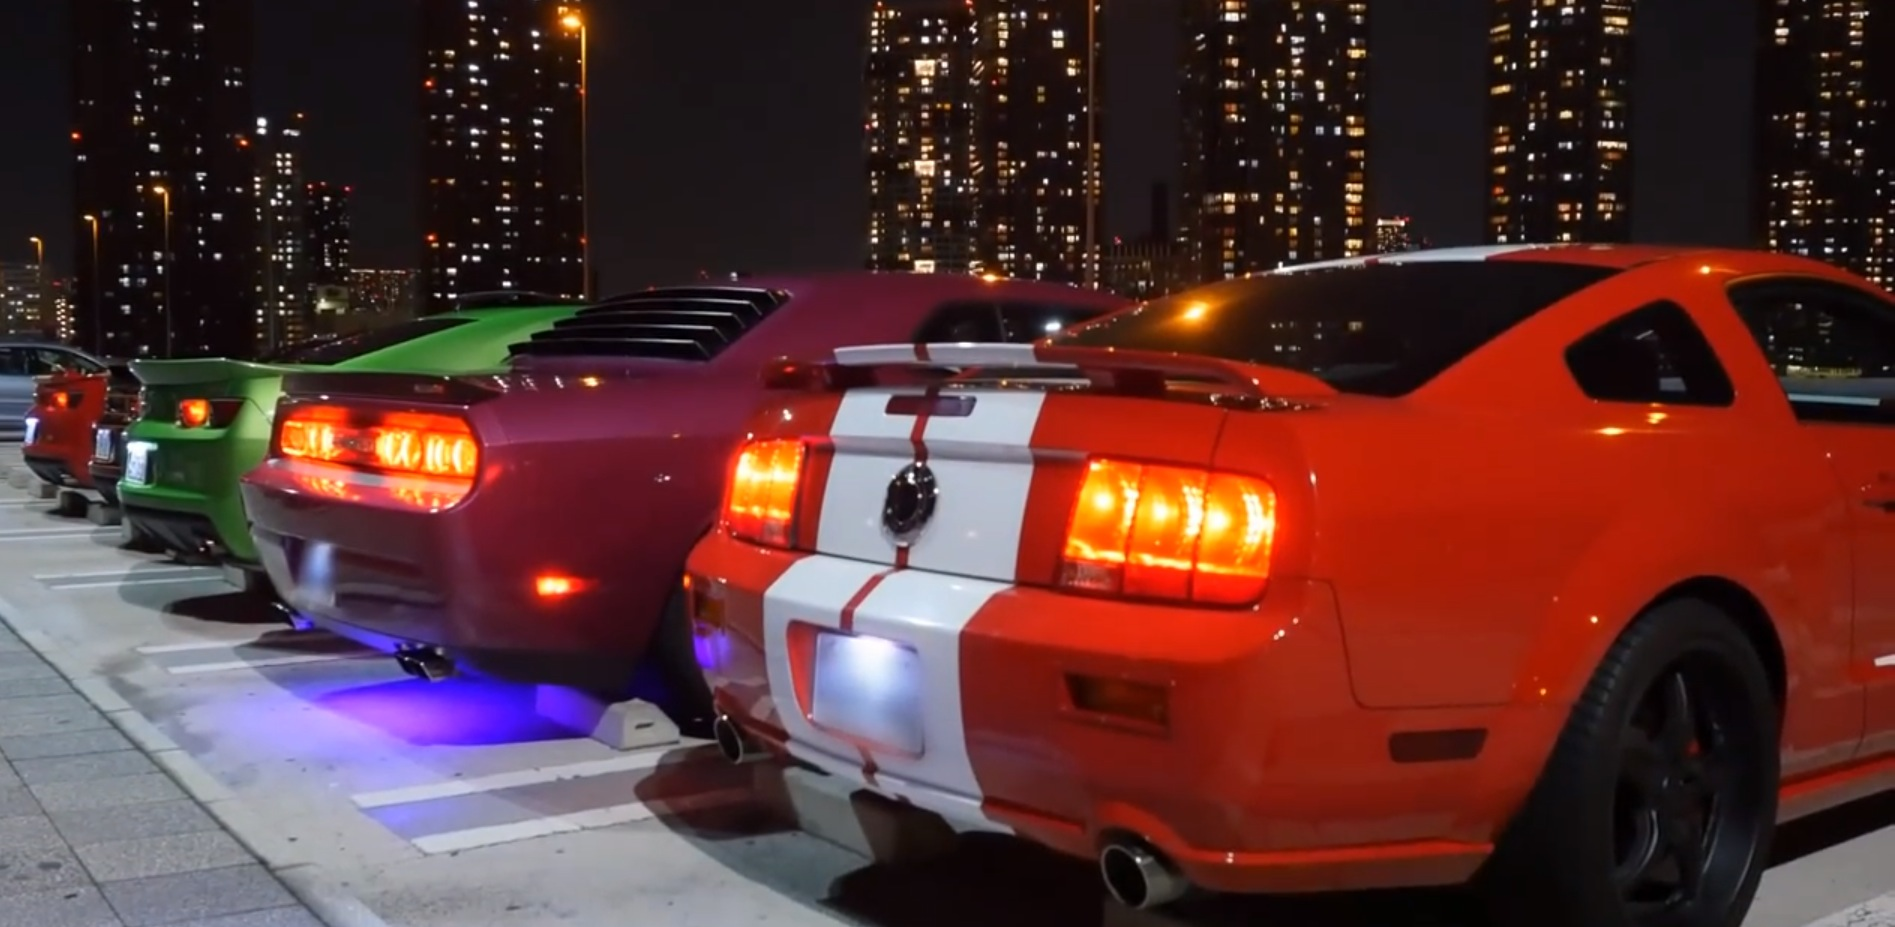 Watch Muscle Car Enthusiasts in Japan Go for a Night Drive in Tokyo ...